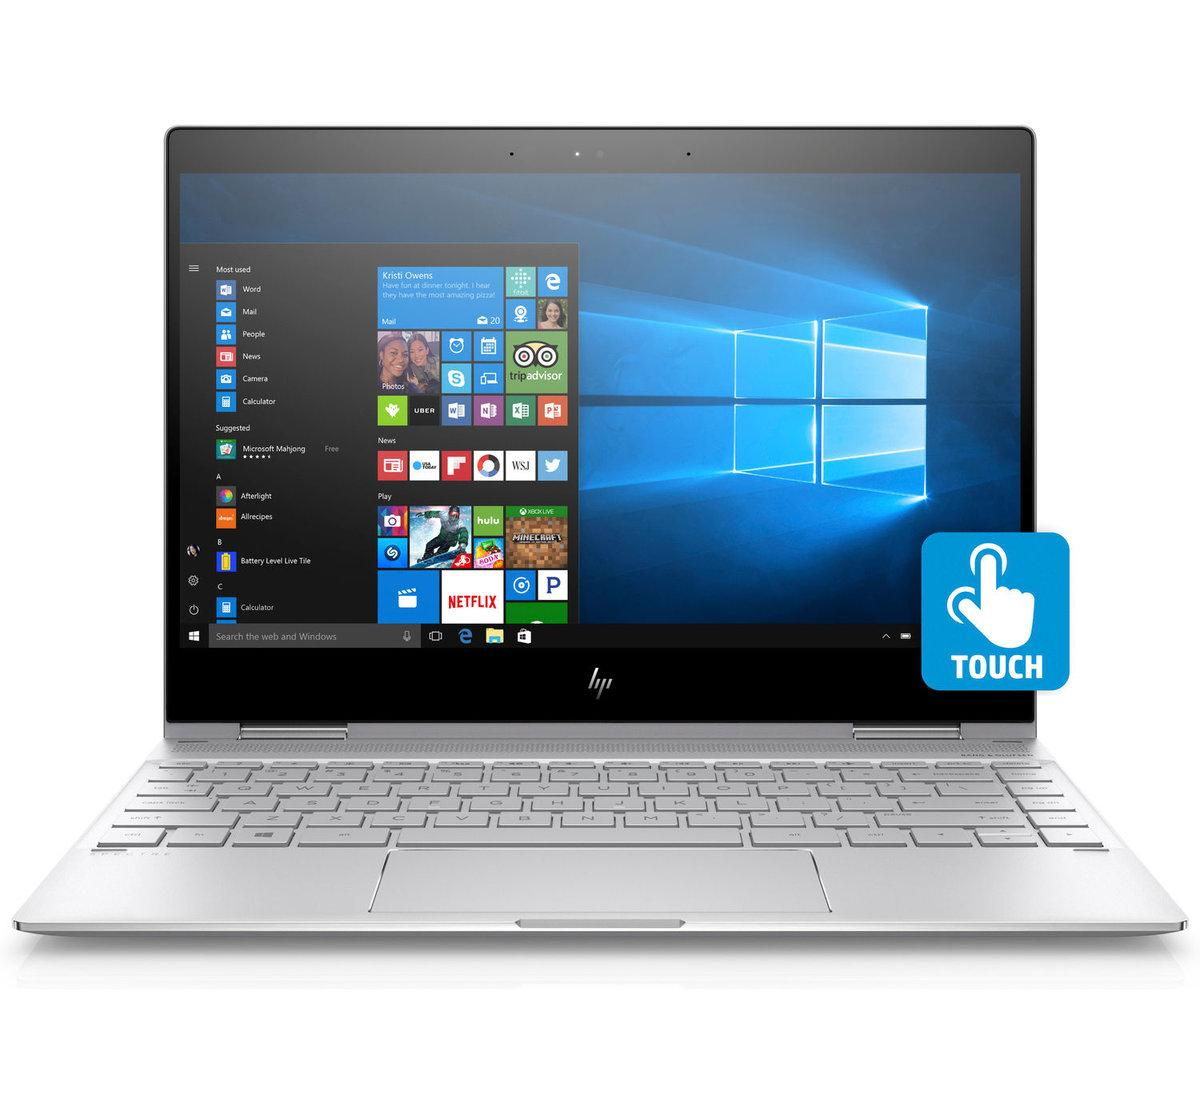 HP 3BE48PA Spectre x360 Convertible Laptop 13-ae079TU (Silver)